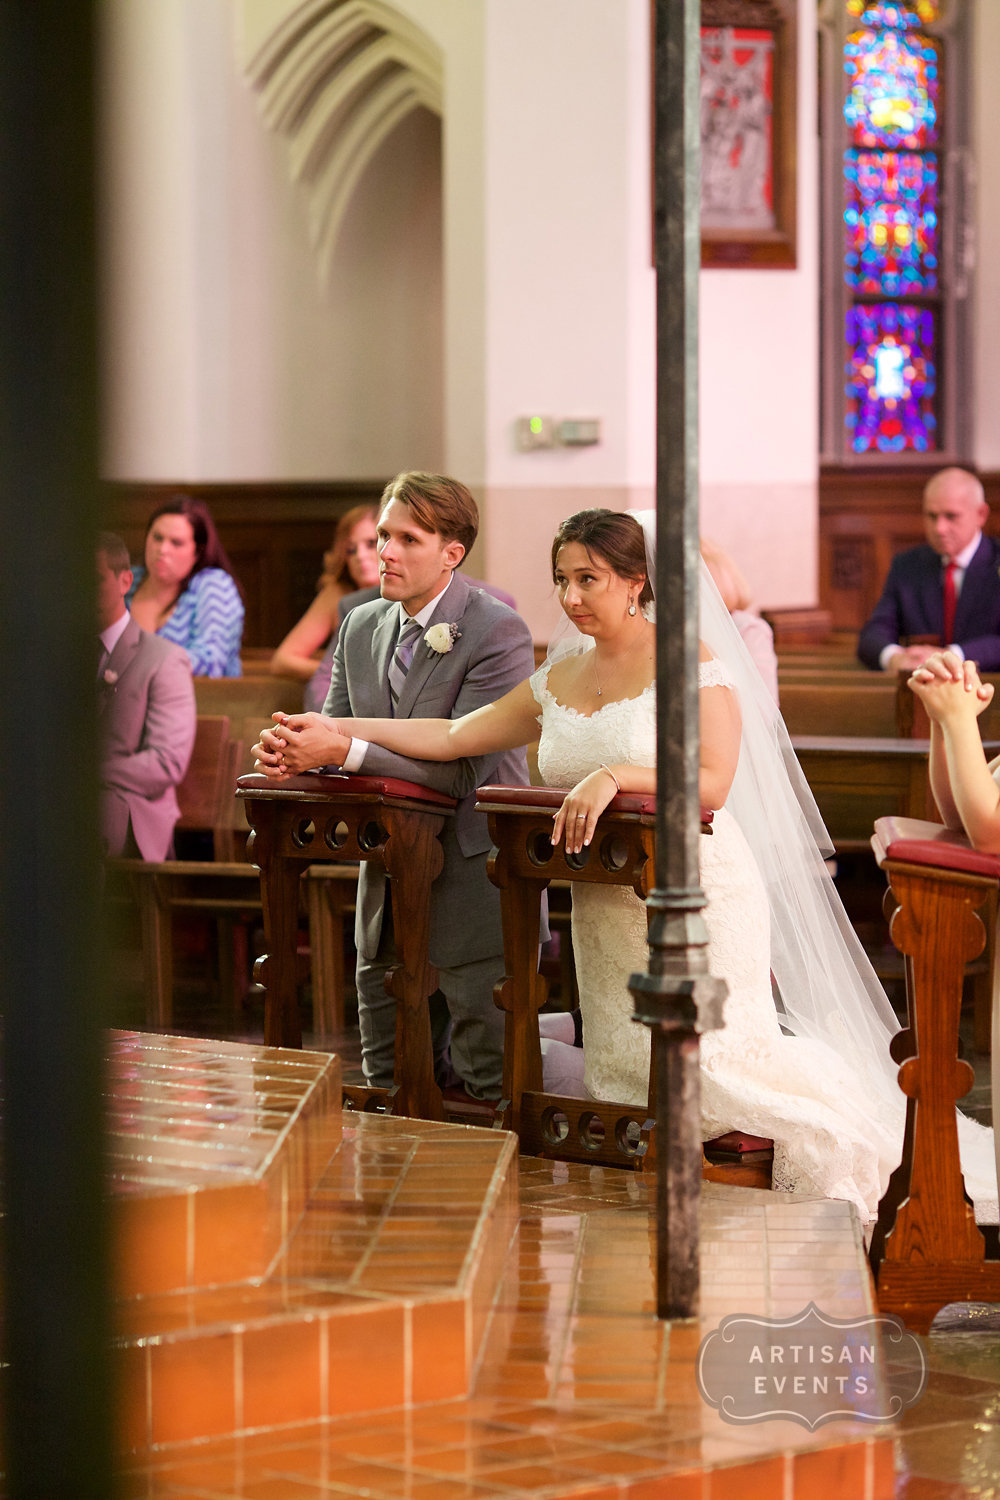 2015.08.14_Moroni-Mikuzis_Wedding